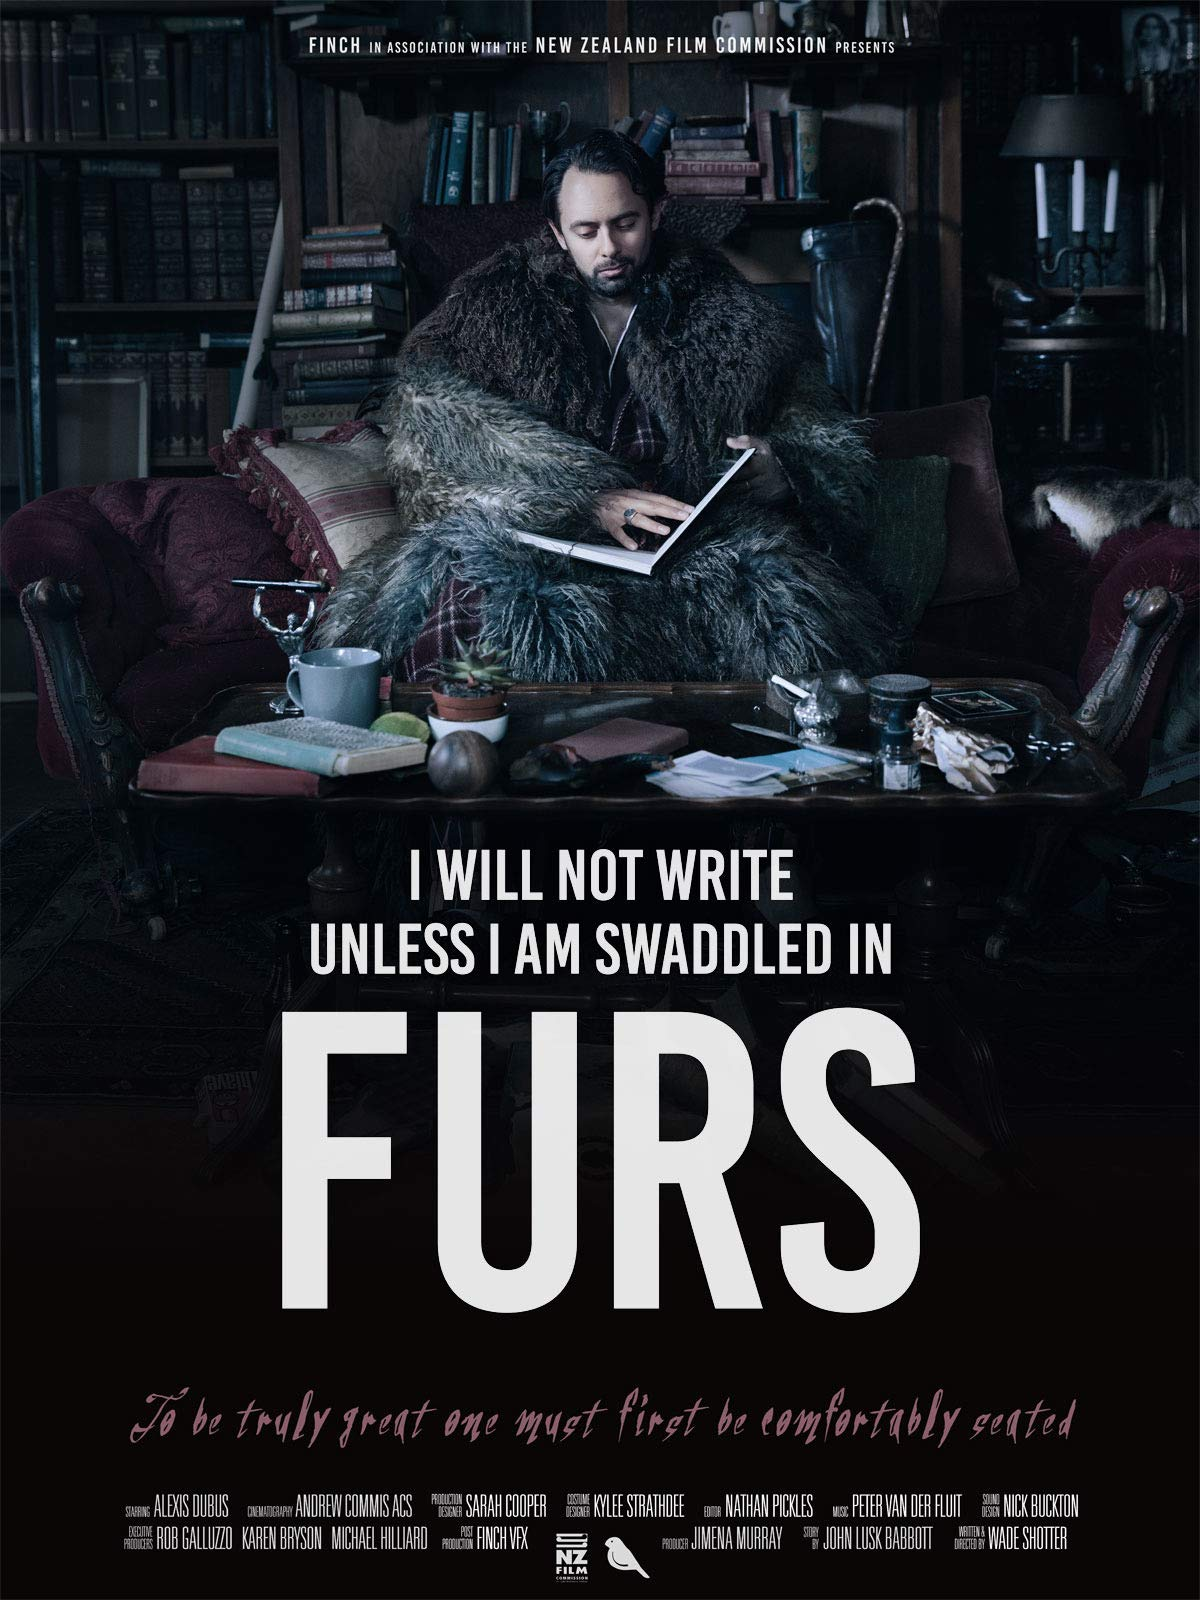 I Will Not Write Unless I'm Swaddled in Furs